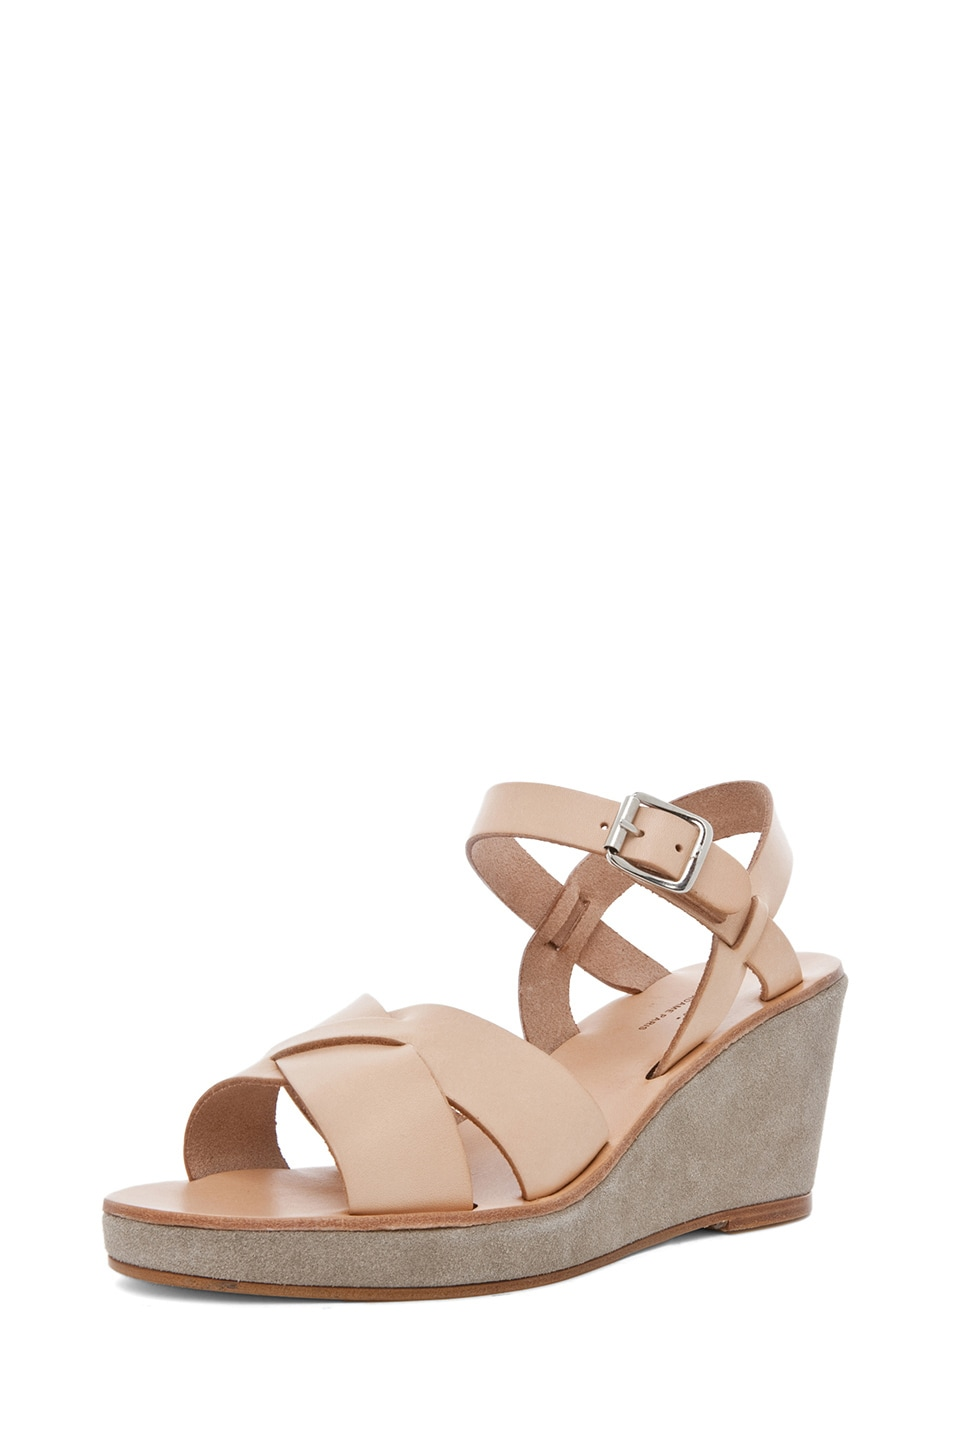 Image 2 of A.P.C. Criss Cros Wedge Sandal in Beige Naturel